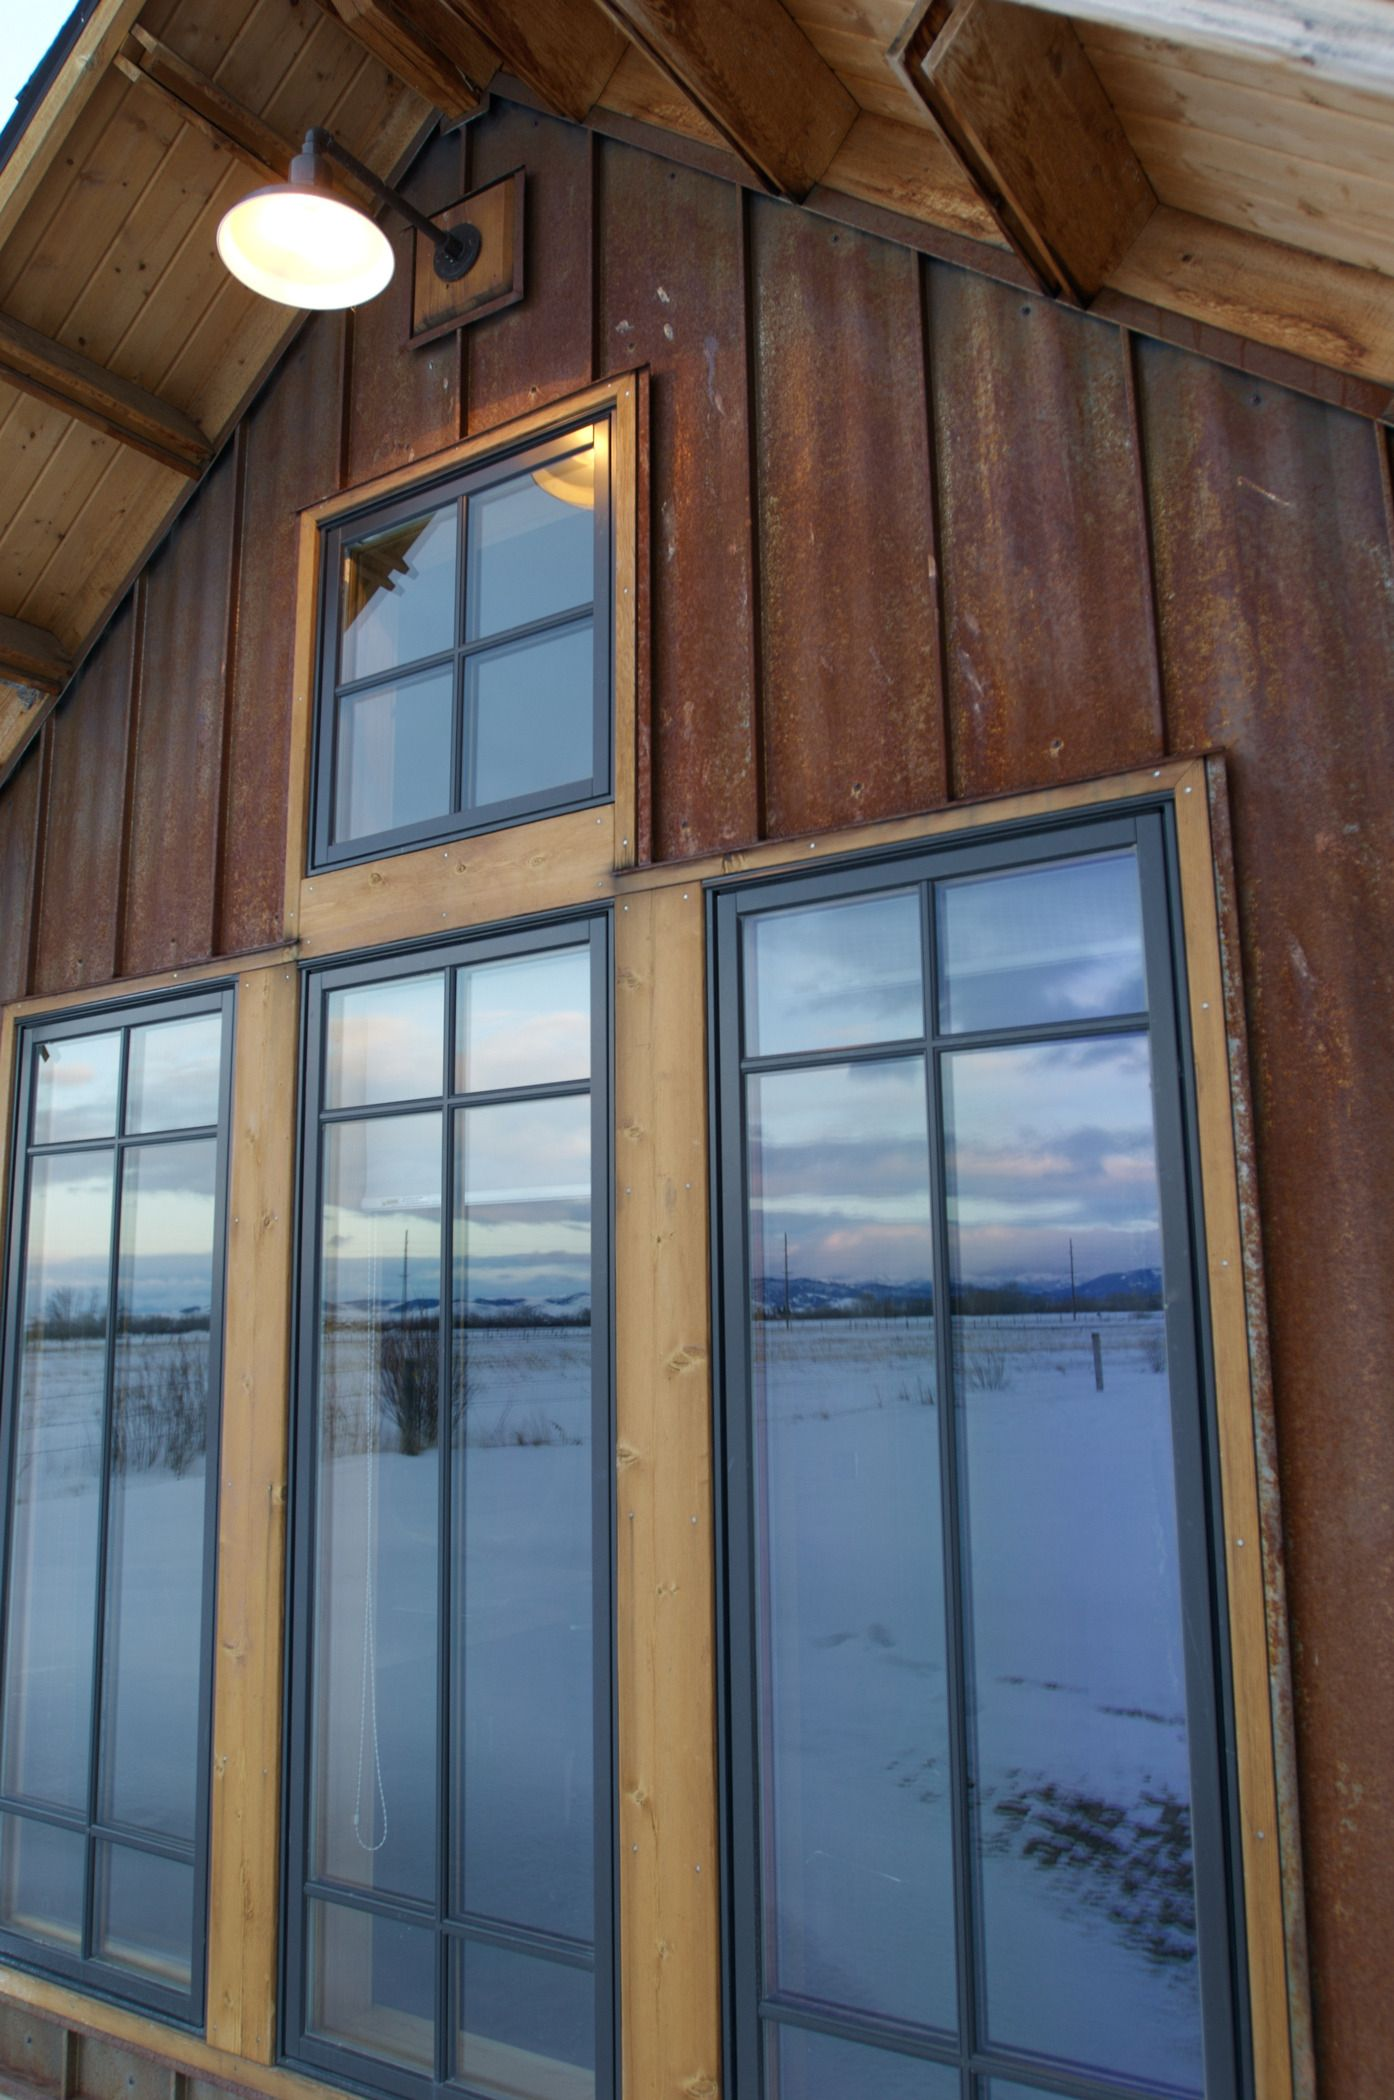 Rustic Siding Done In Steel Will Outlast Other Board And